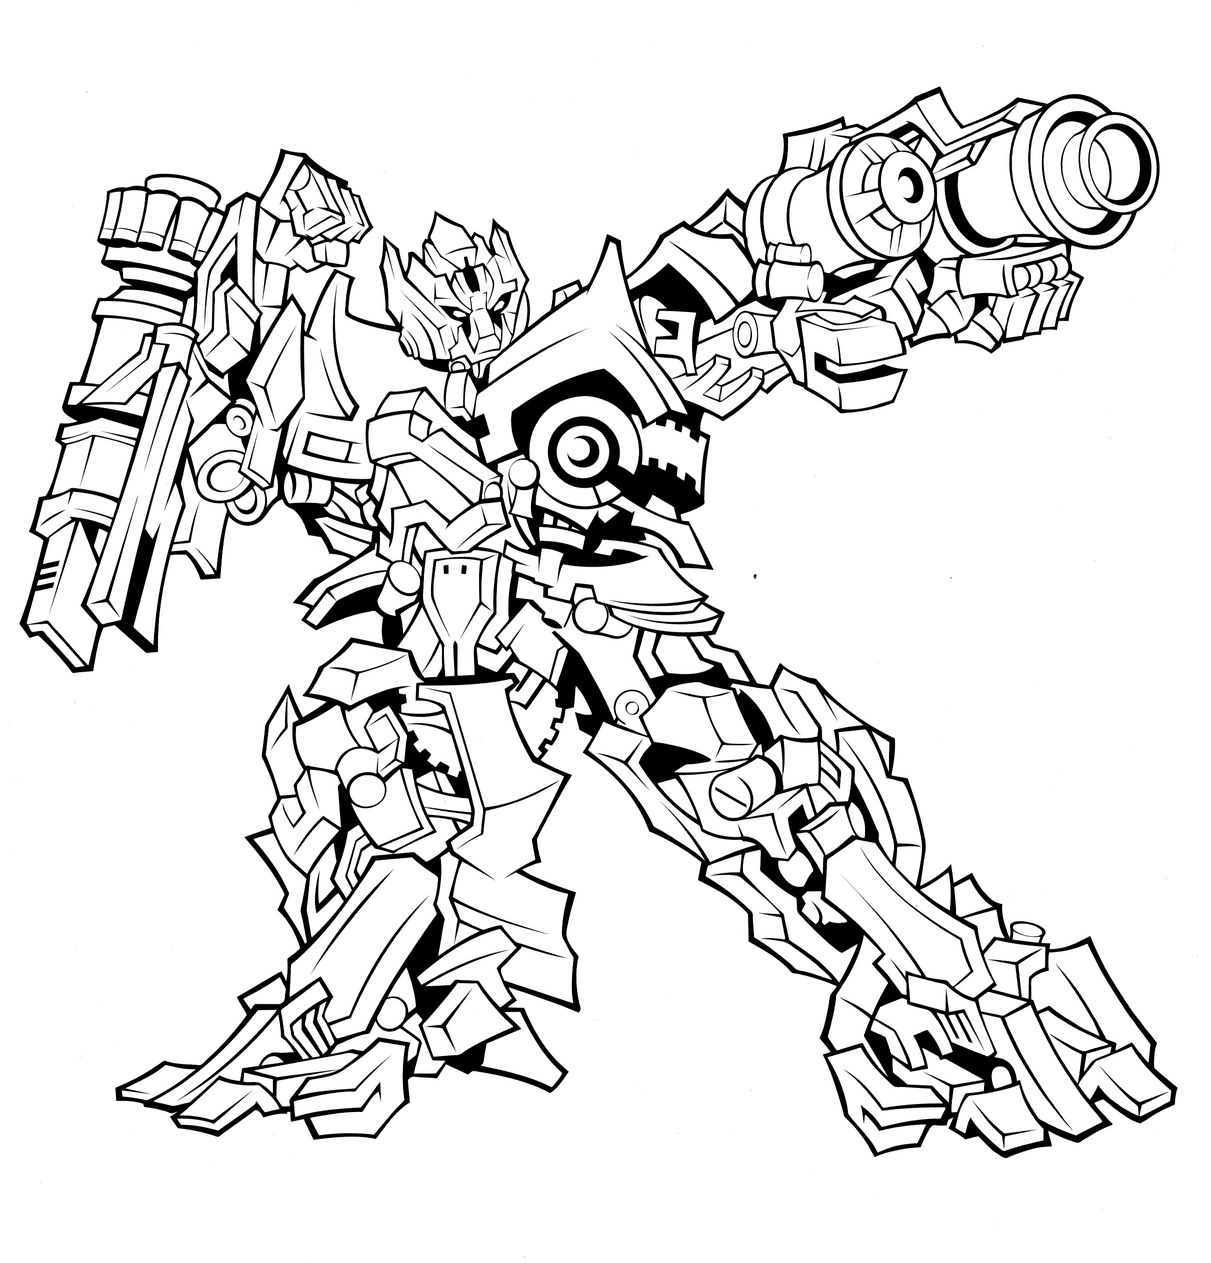 Uncategorized Transformers Coloring Games free printable transformers coloring pages for kids page transformers